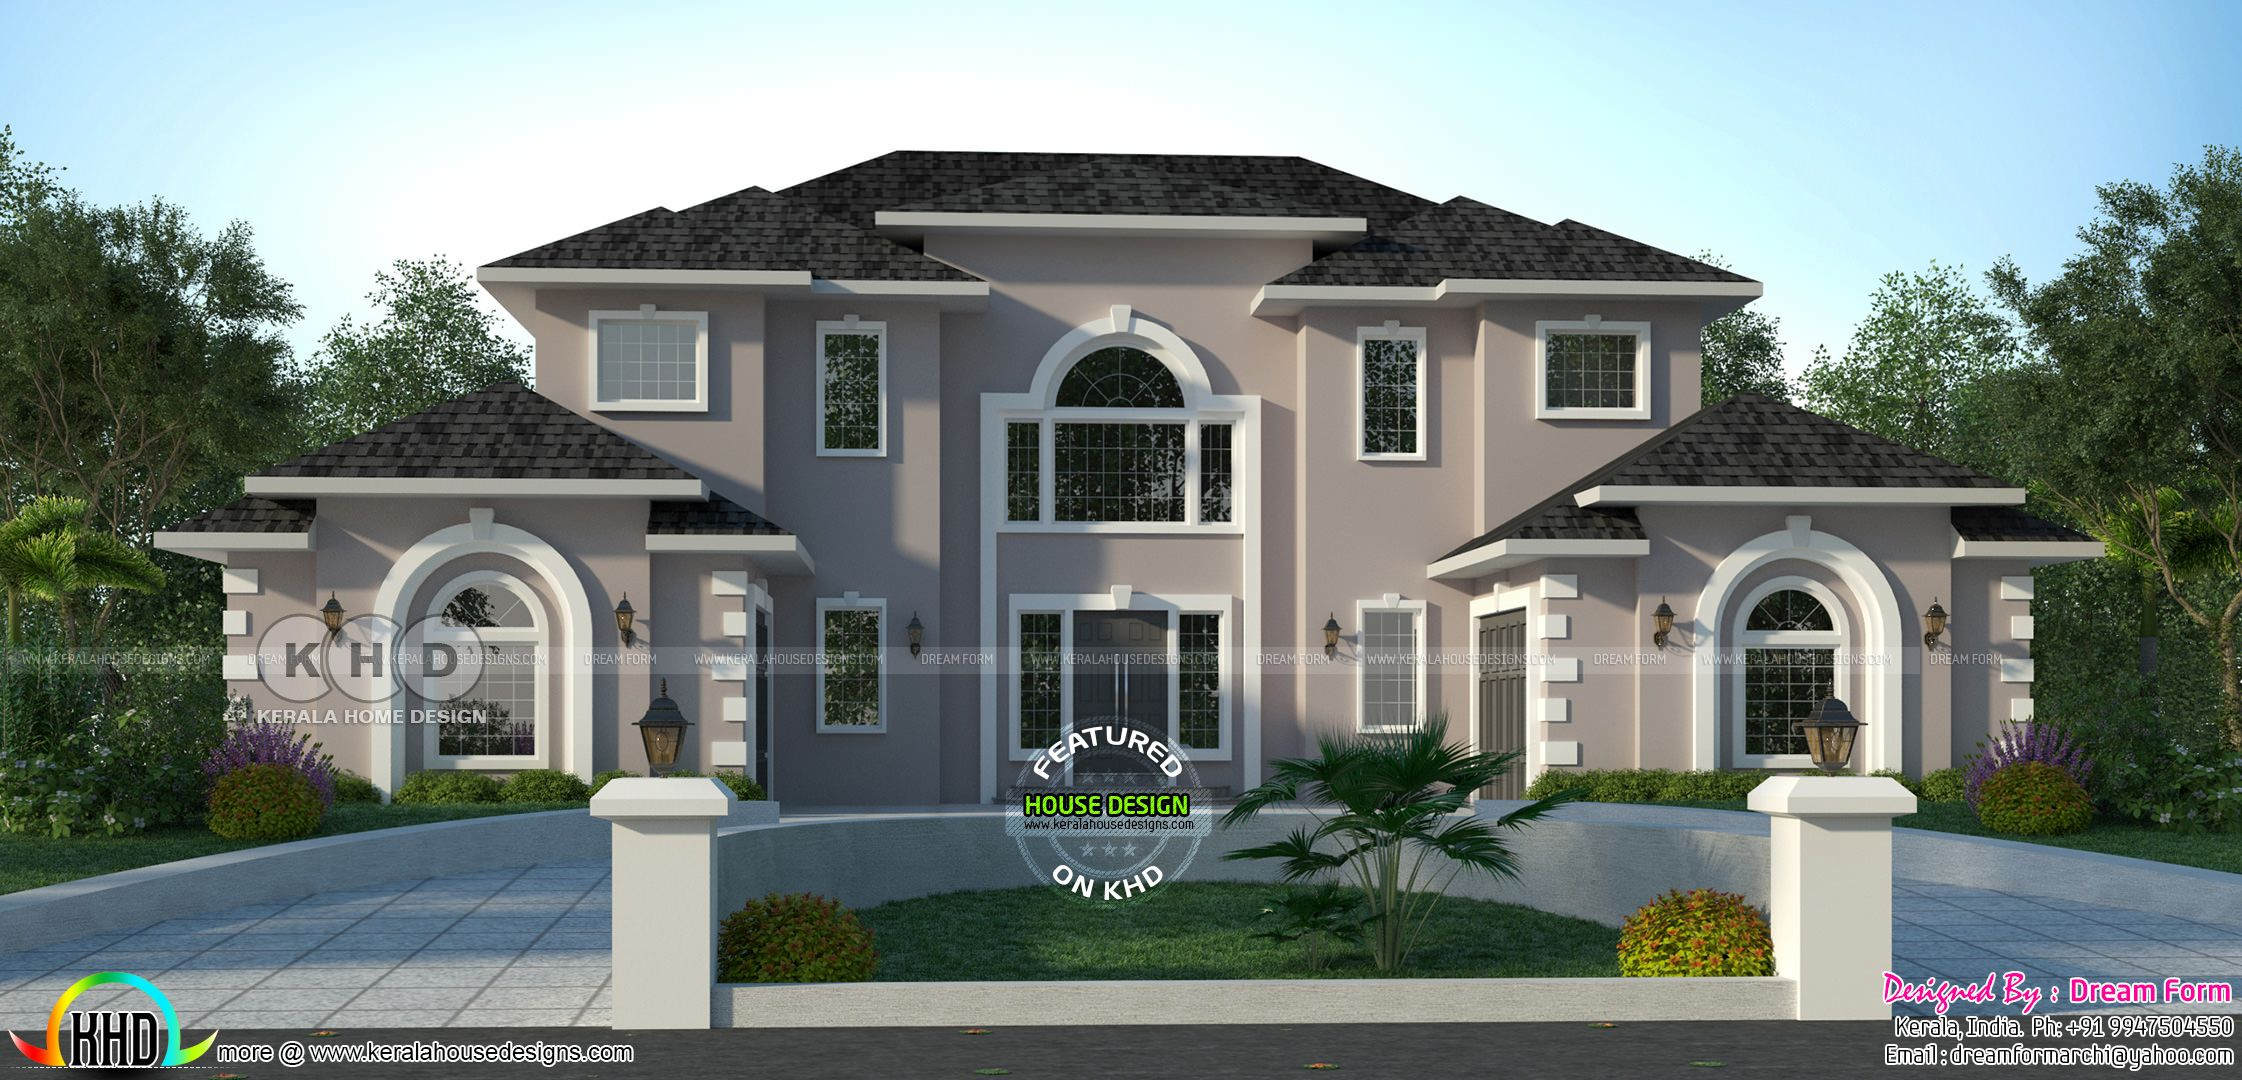 5 Bedroom 3322 Sq Ft American Style Modern Home Design House Plans Mansion House Design Modern House Design